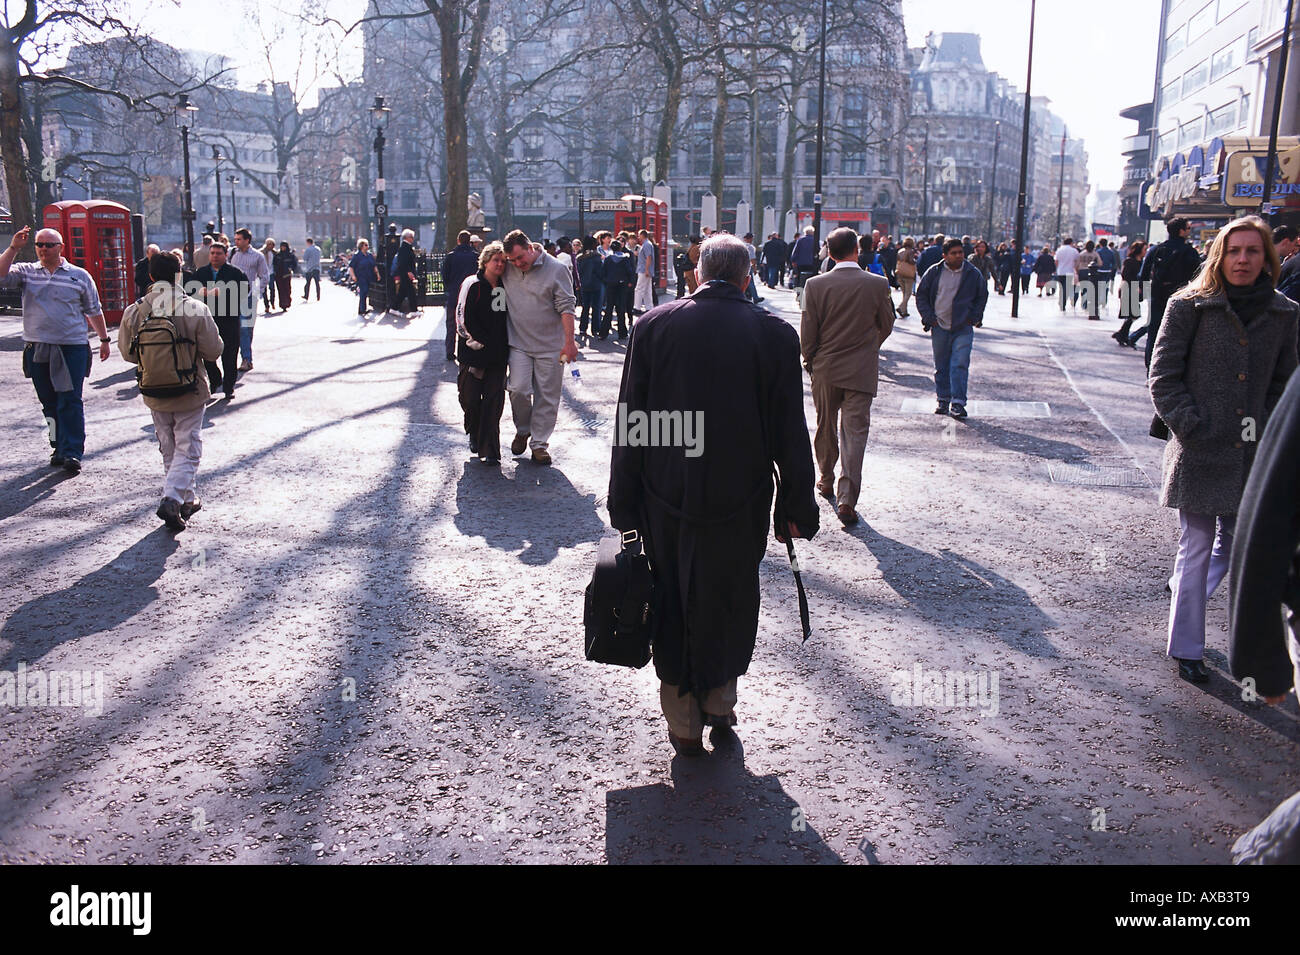 Passers-by in the Leicester Square in autmn, London, England, Great Britain - Stock Image